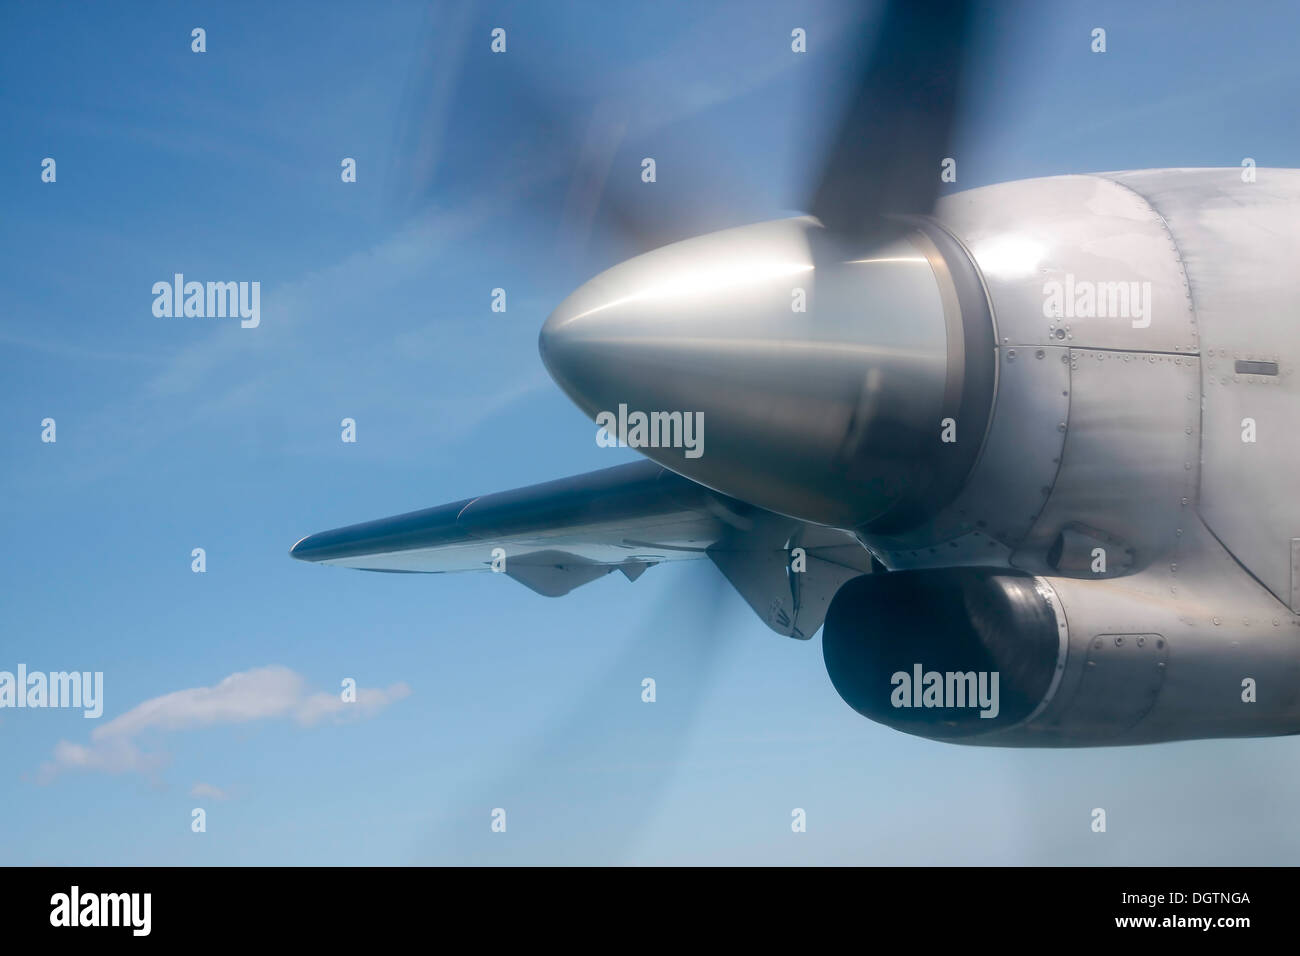 Running silver propeller in front of blue sky - Stock Image